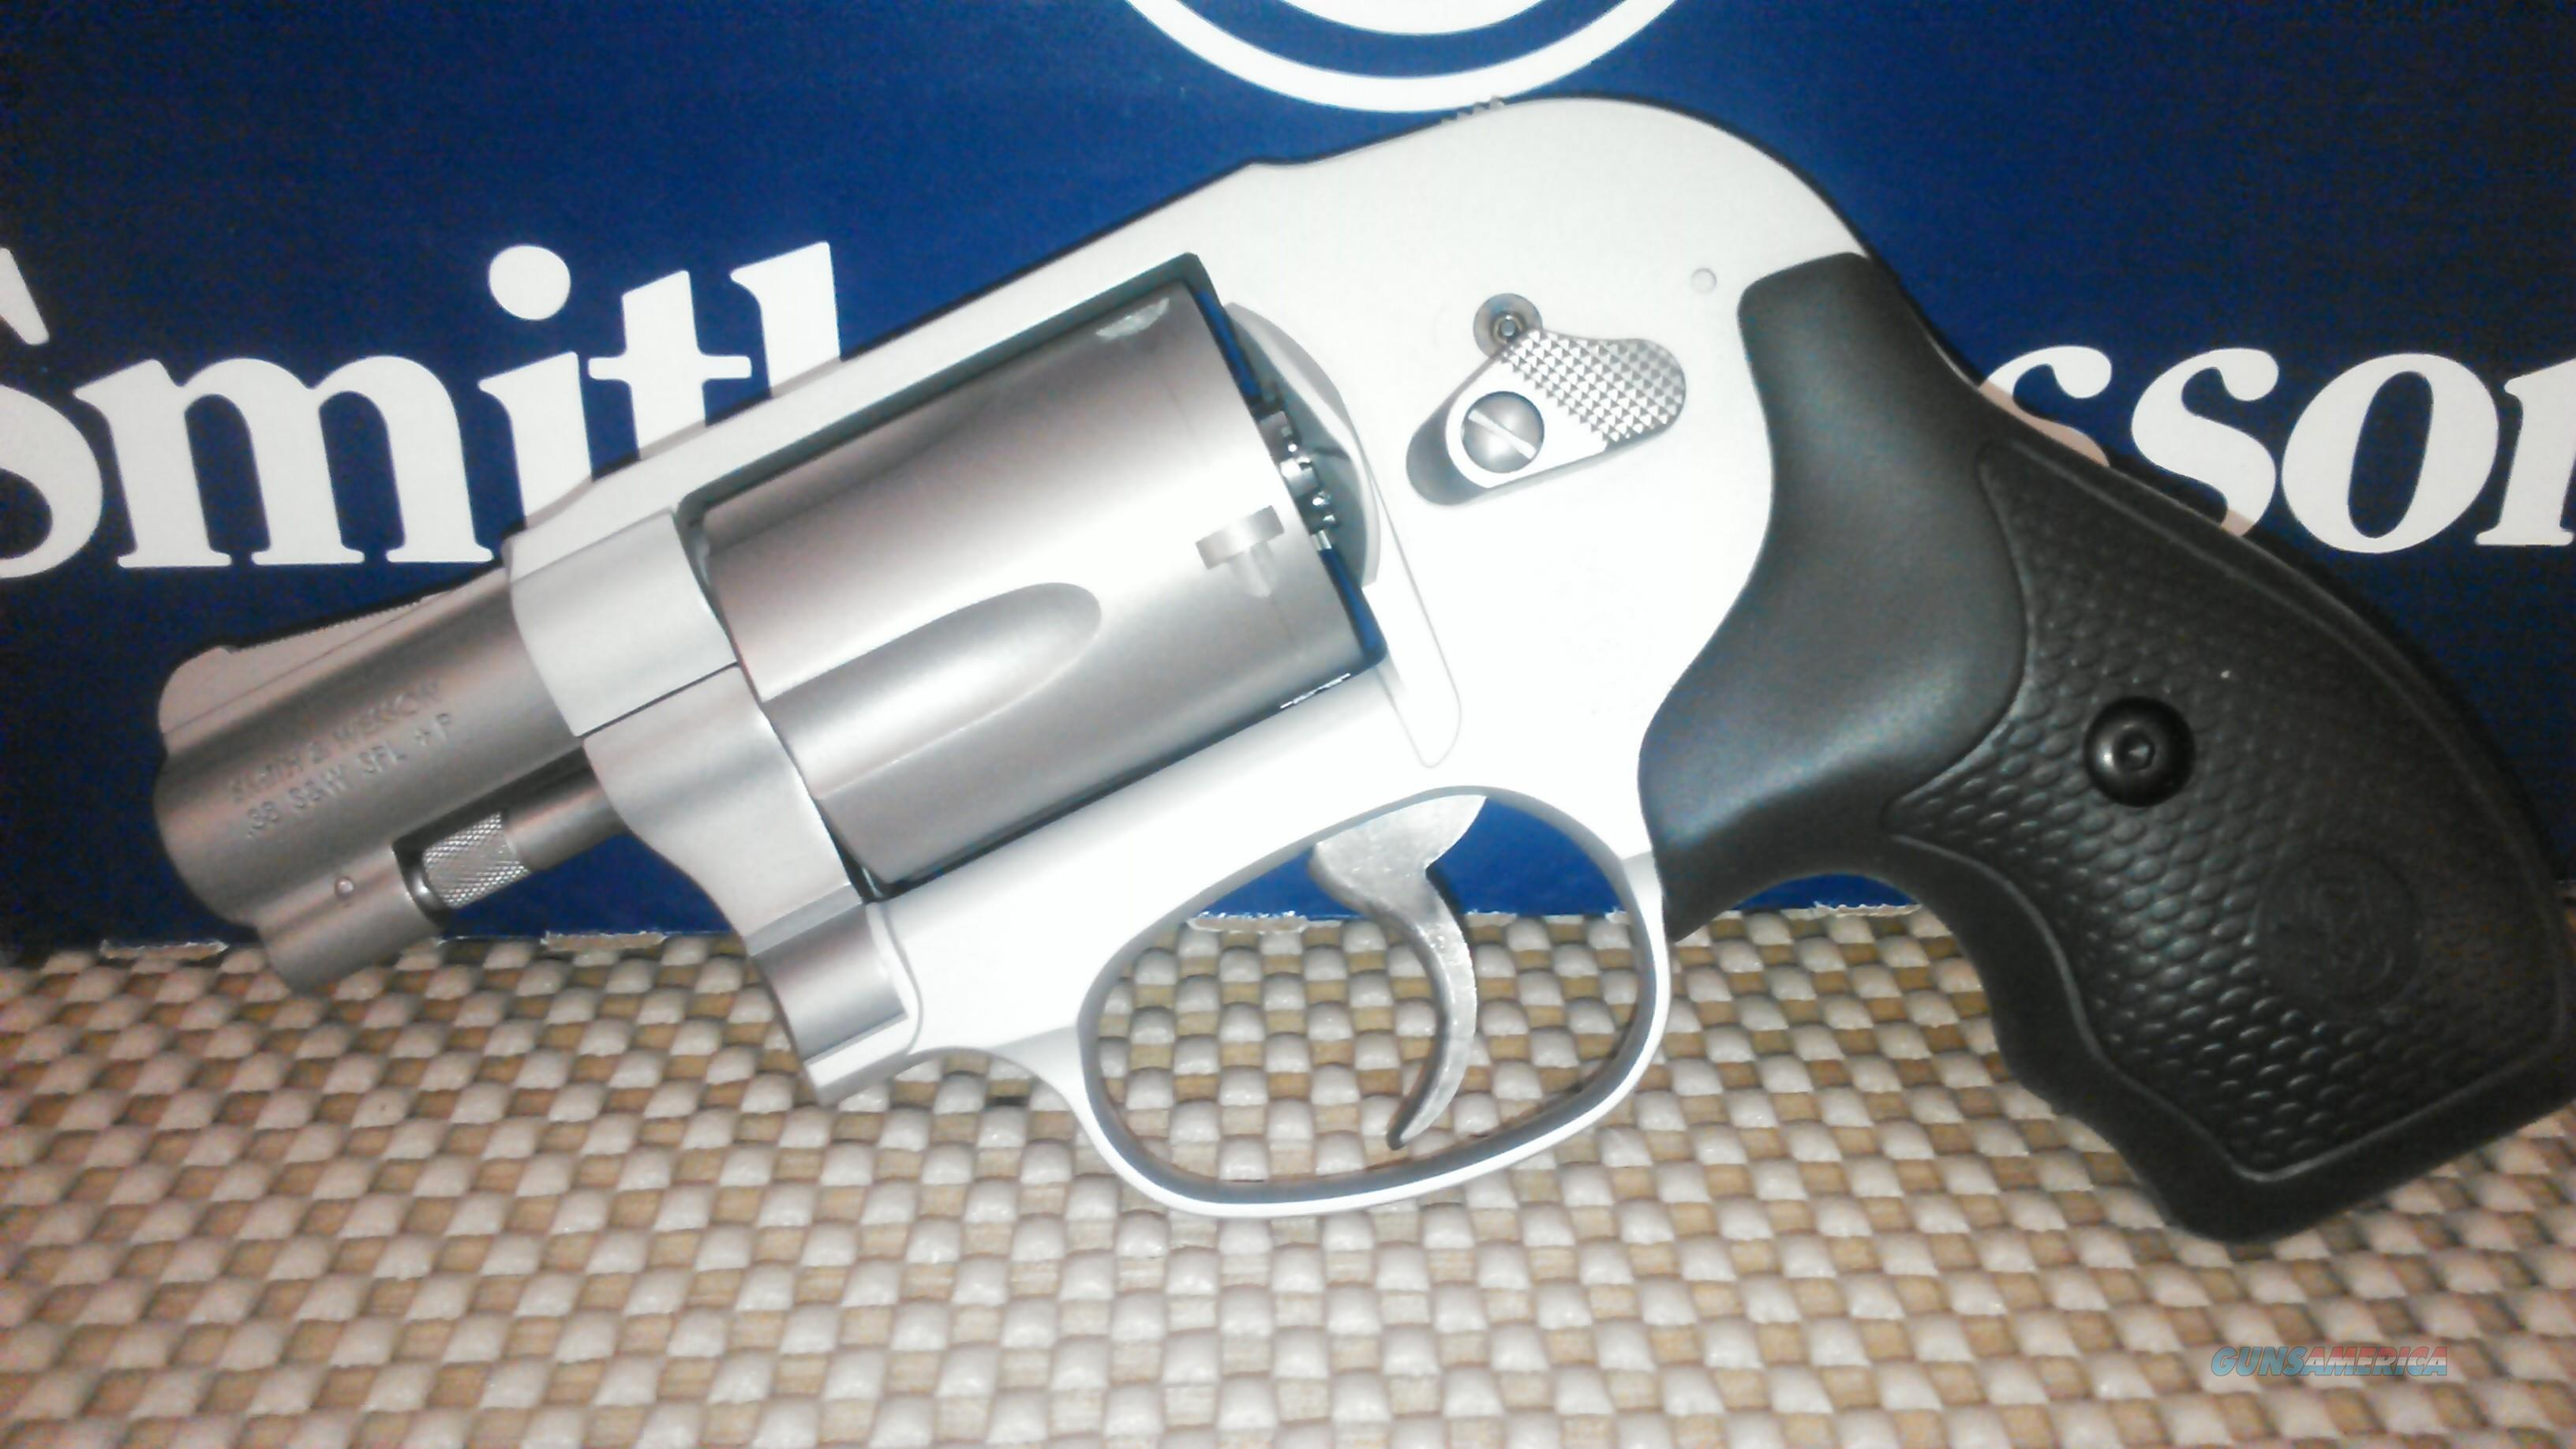 SMITH&WESSON .38SPL+P AIRWEIGHT 638 5SHOT EXCELLENT CONDITION, FREE SHIPPING NO CC FEE  Guns > Pistols > Smith & Wesson Revolvers > Full Frame Revolver